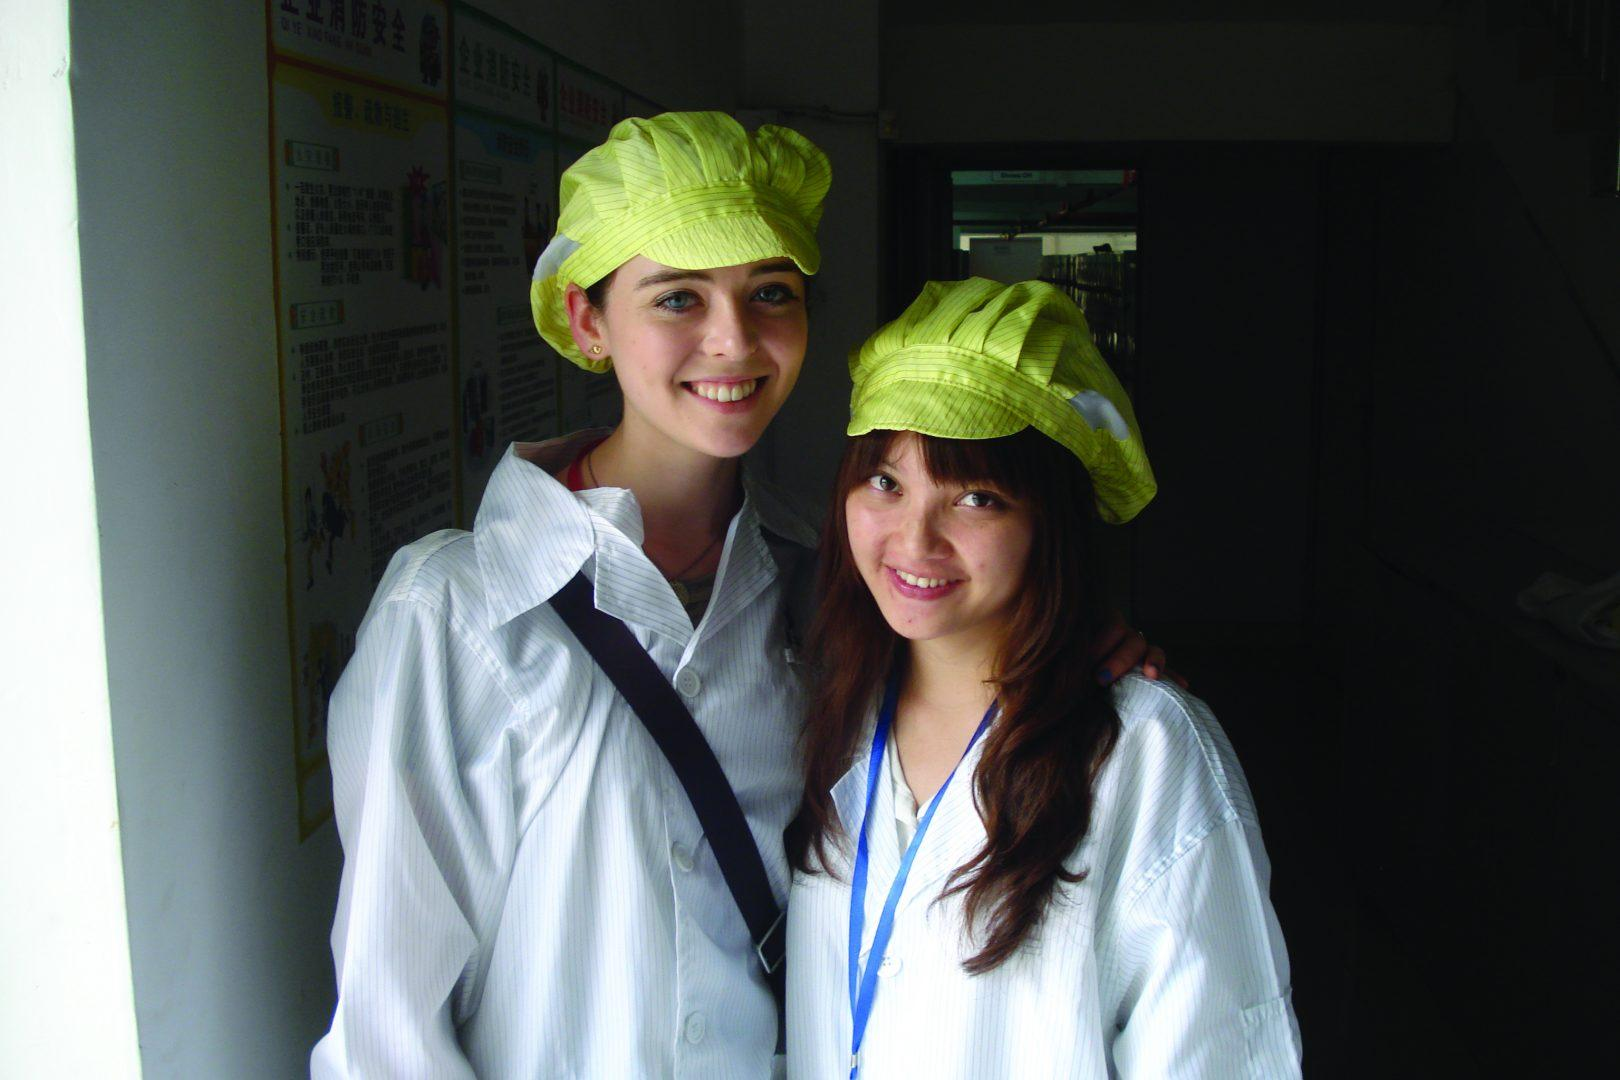 Heather Foye, FCLC '14, and Janet, her Chinese roommate, pose in smocks and hats in an electronics factory. (Courtesy of Heather Foye)